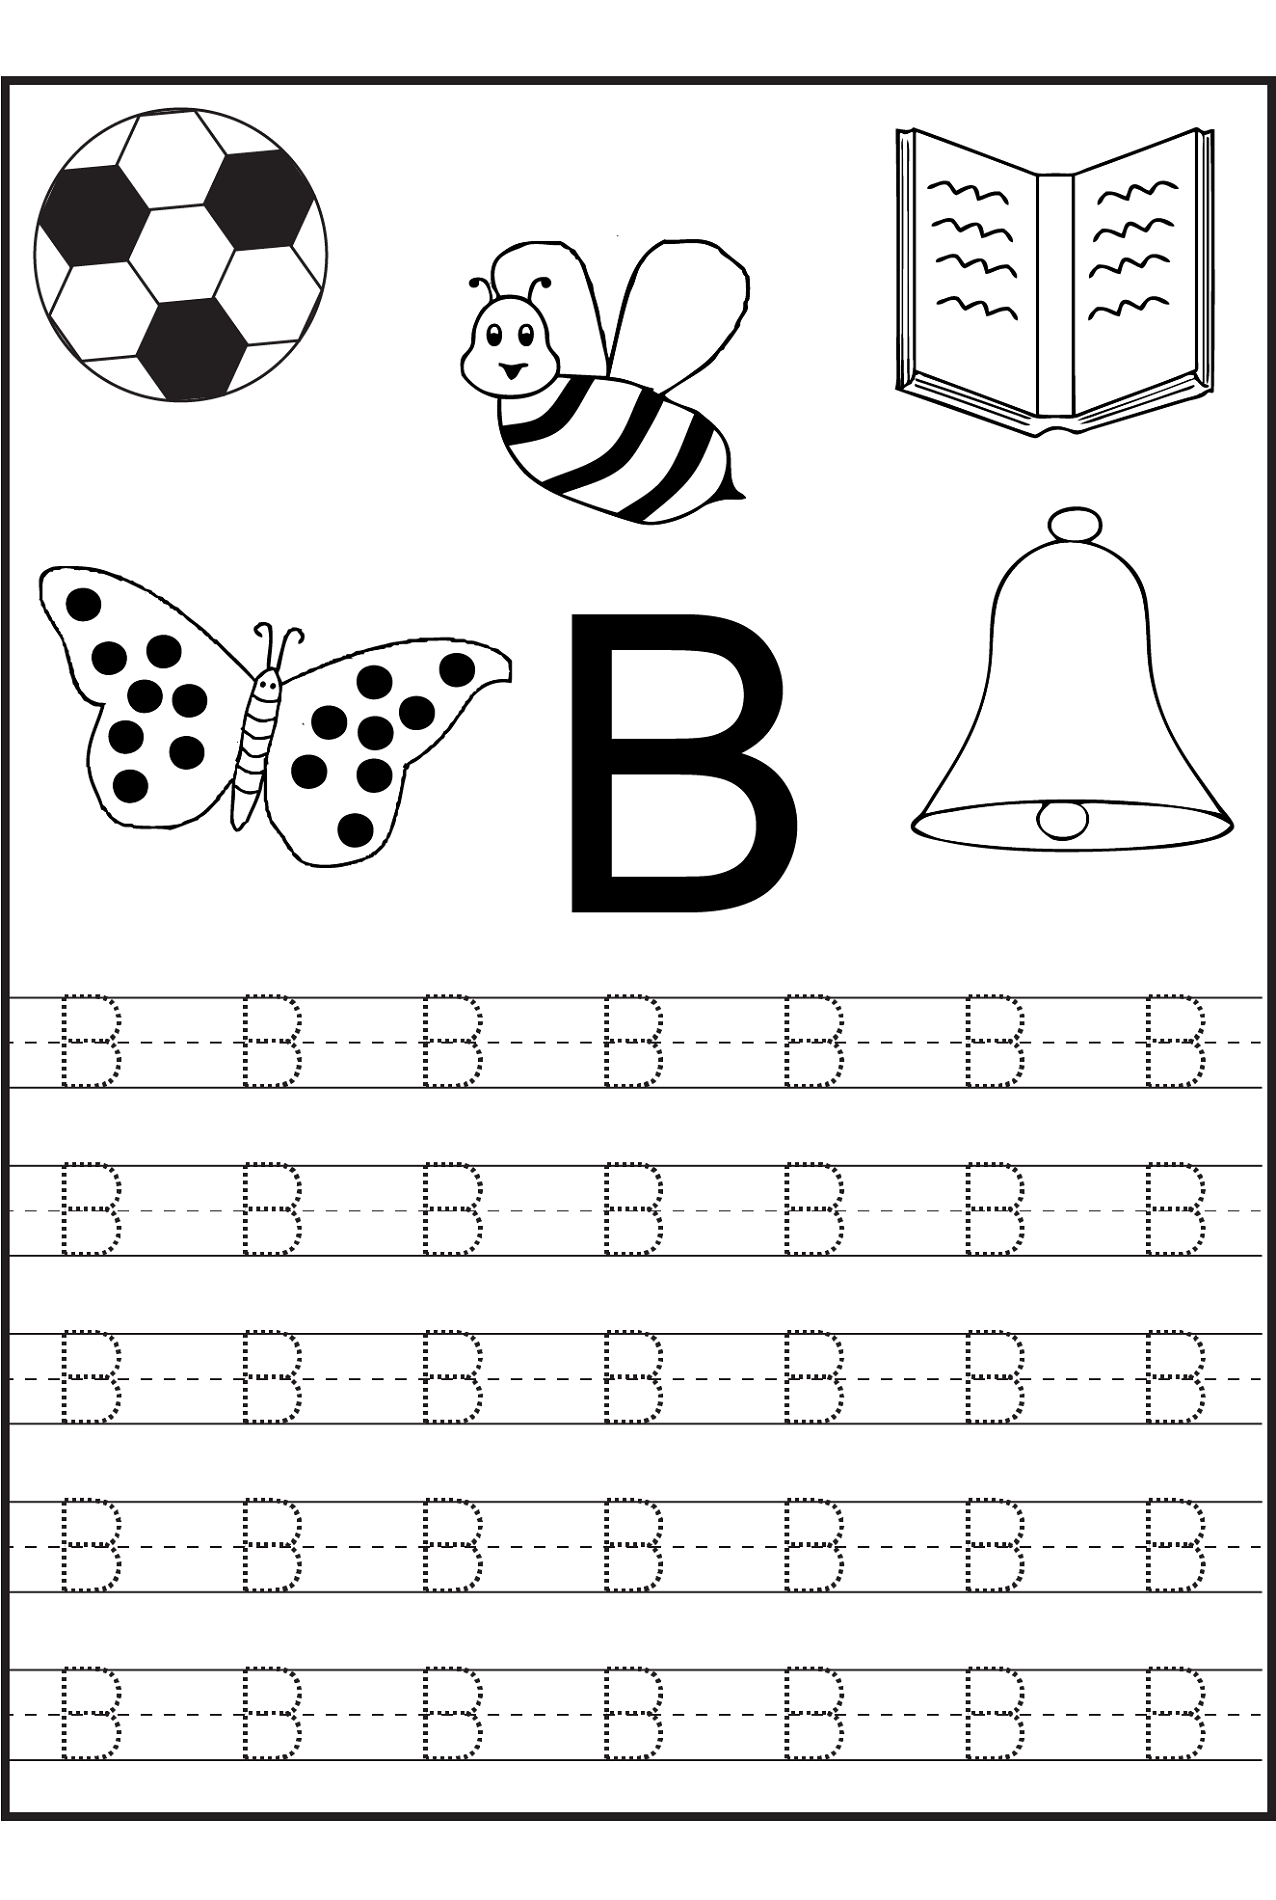 Traceable Letters Worksheets